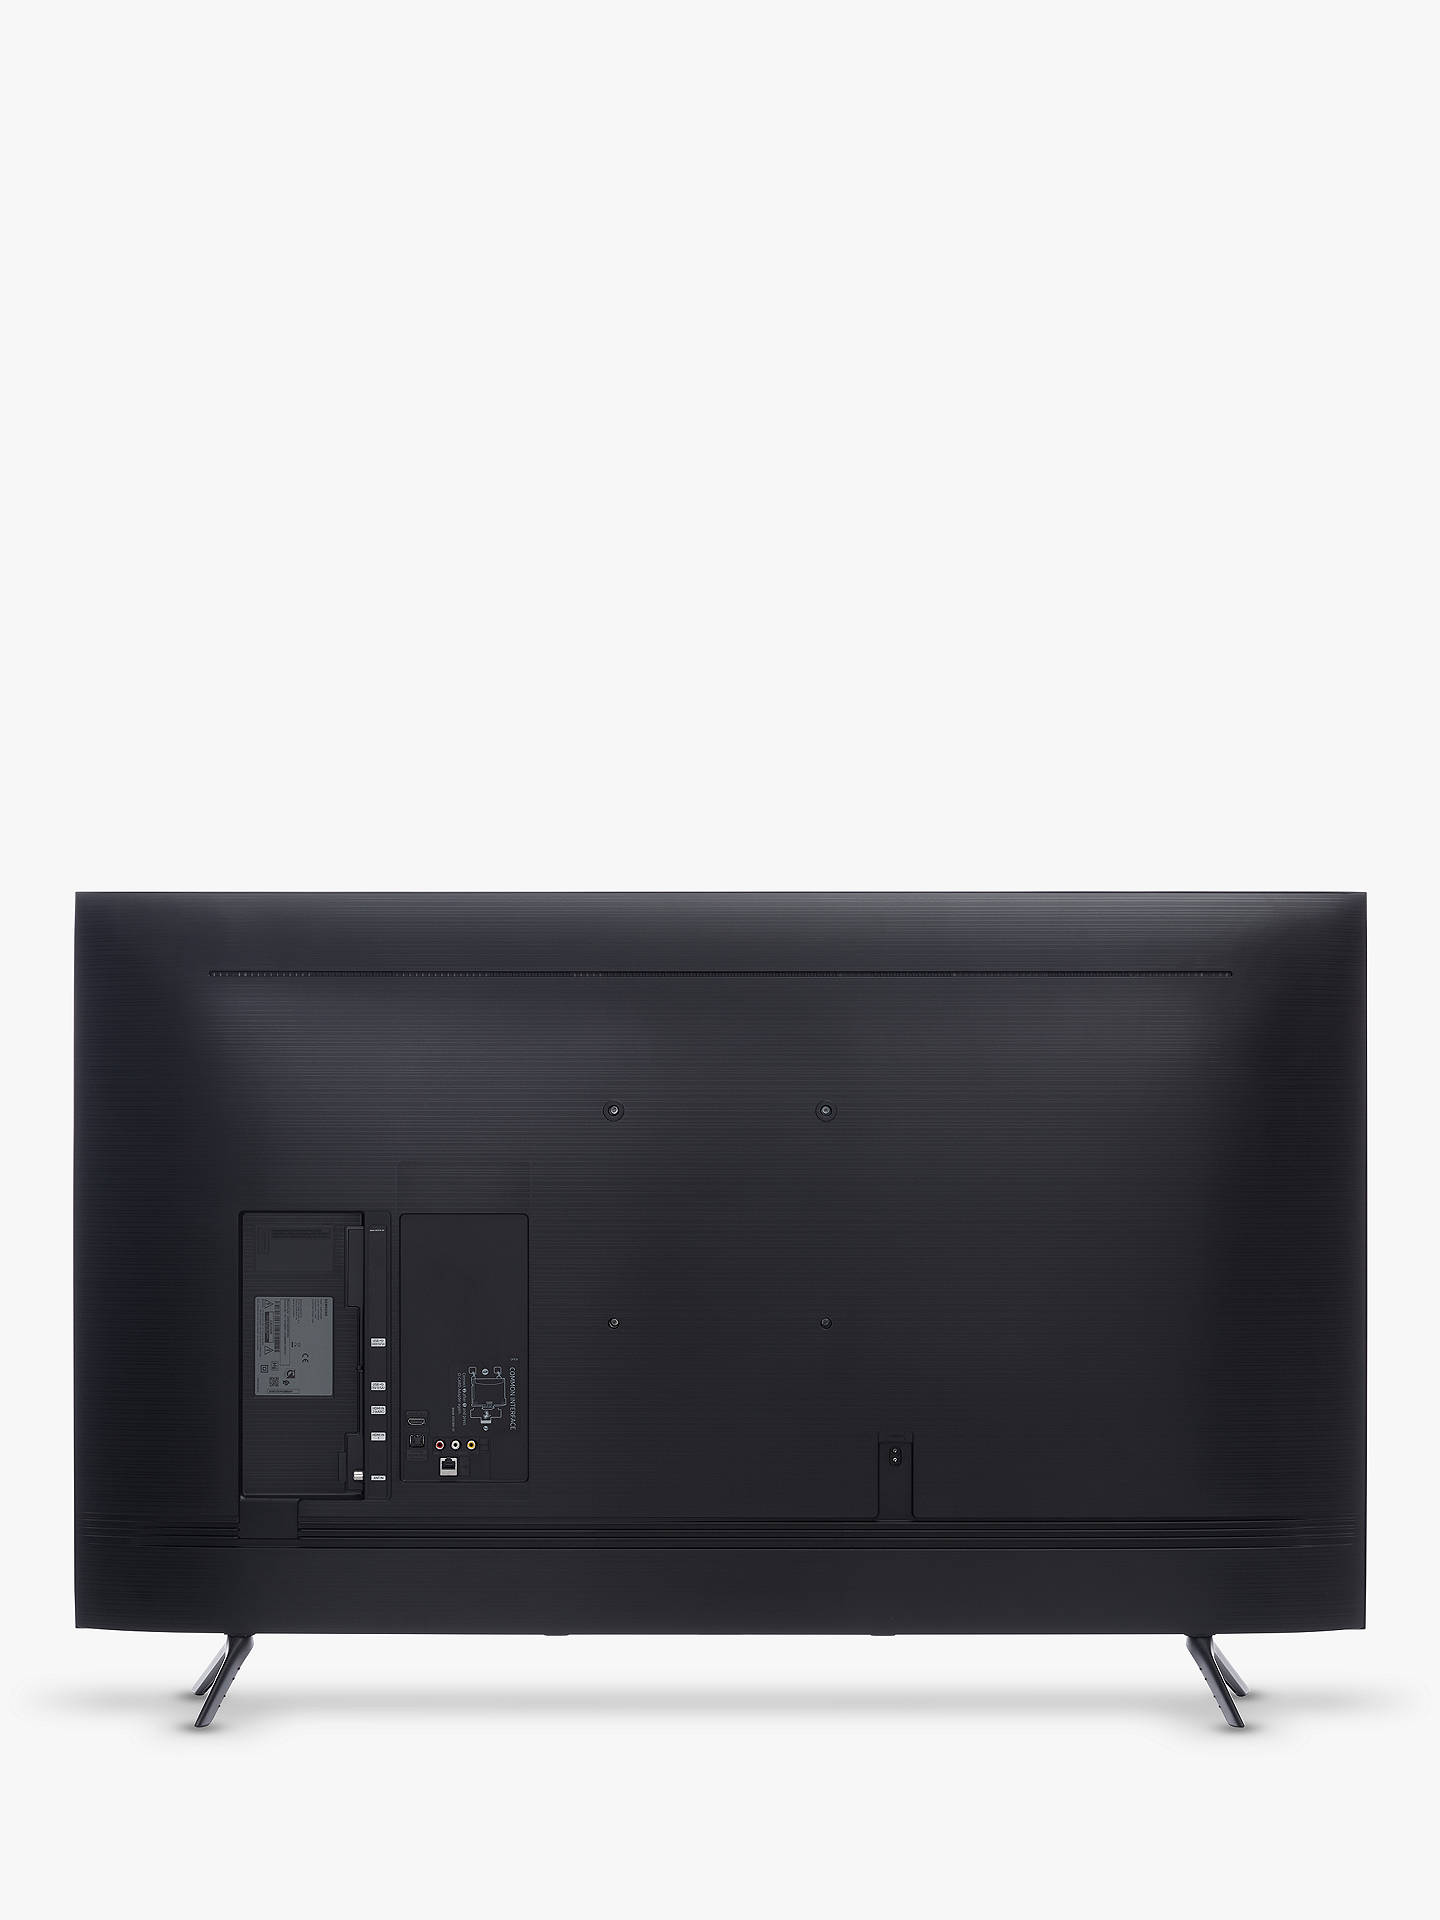 Buy Samsung UE43TU8000 (2020) HDR 4K Ultra HD Smart TV, 43 inch with TVPlus, Black Online at johnlewis.com